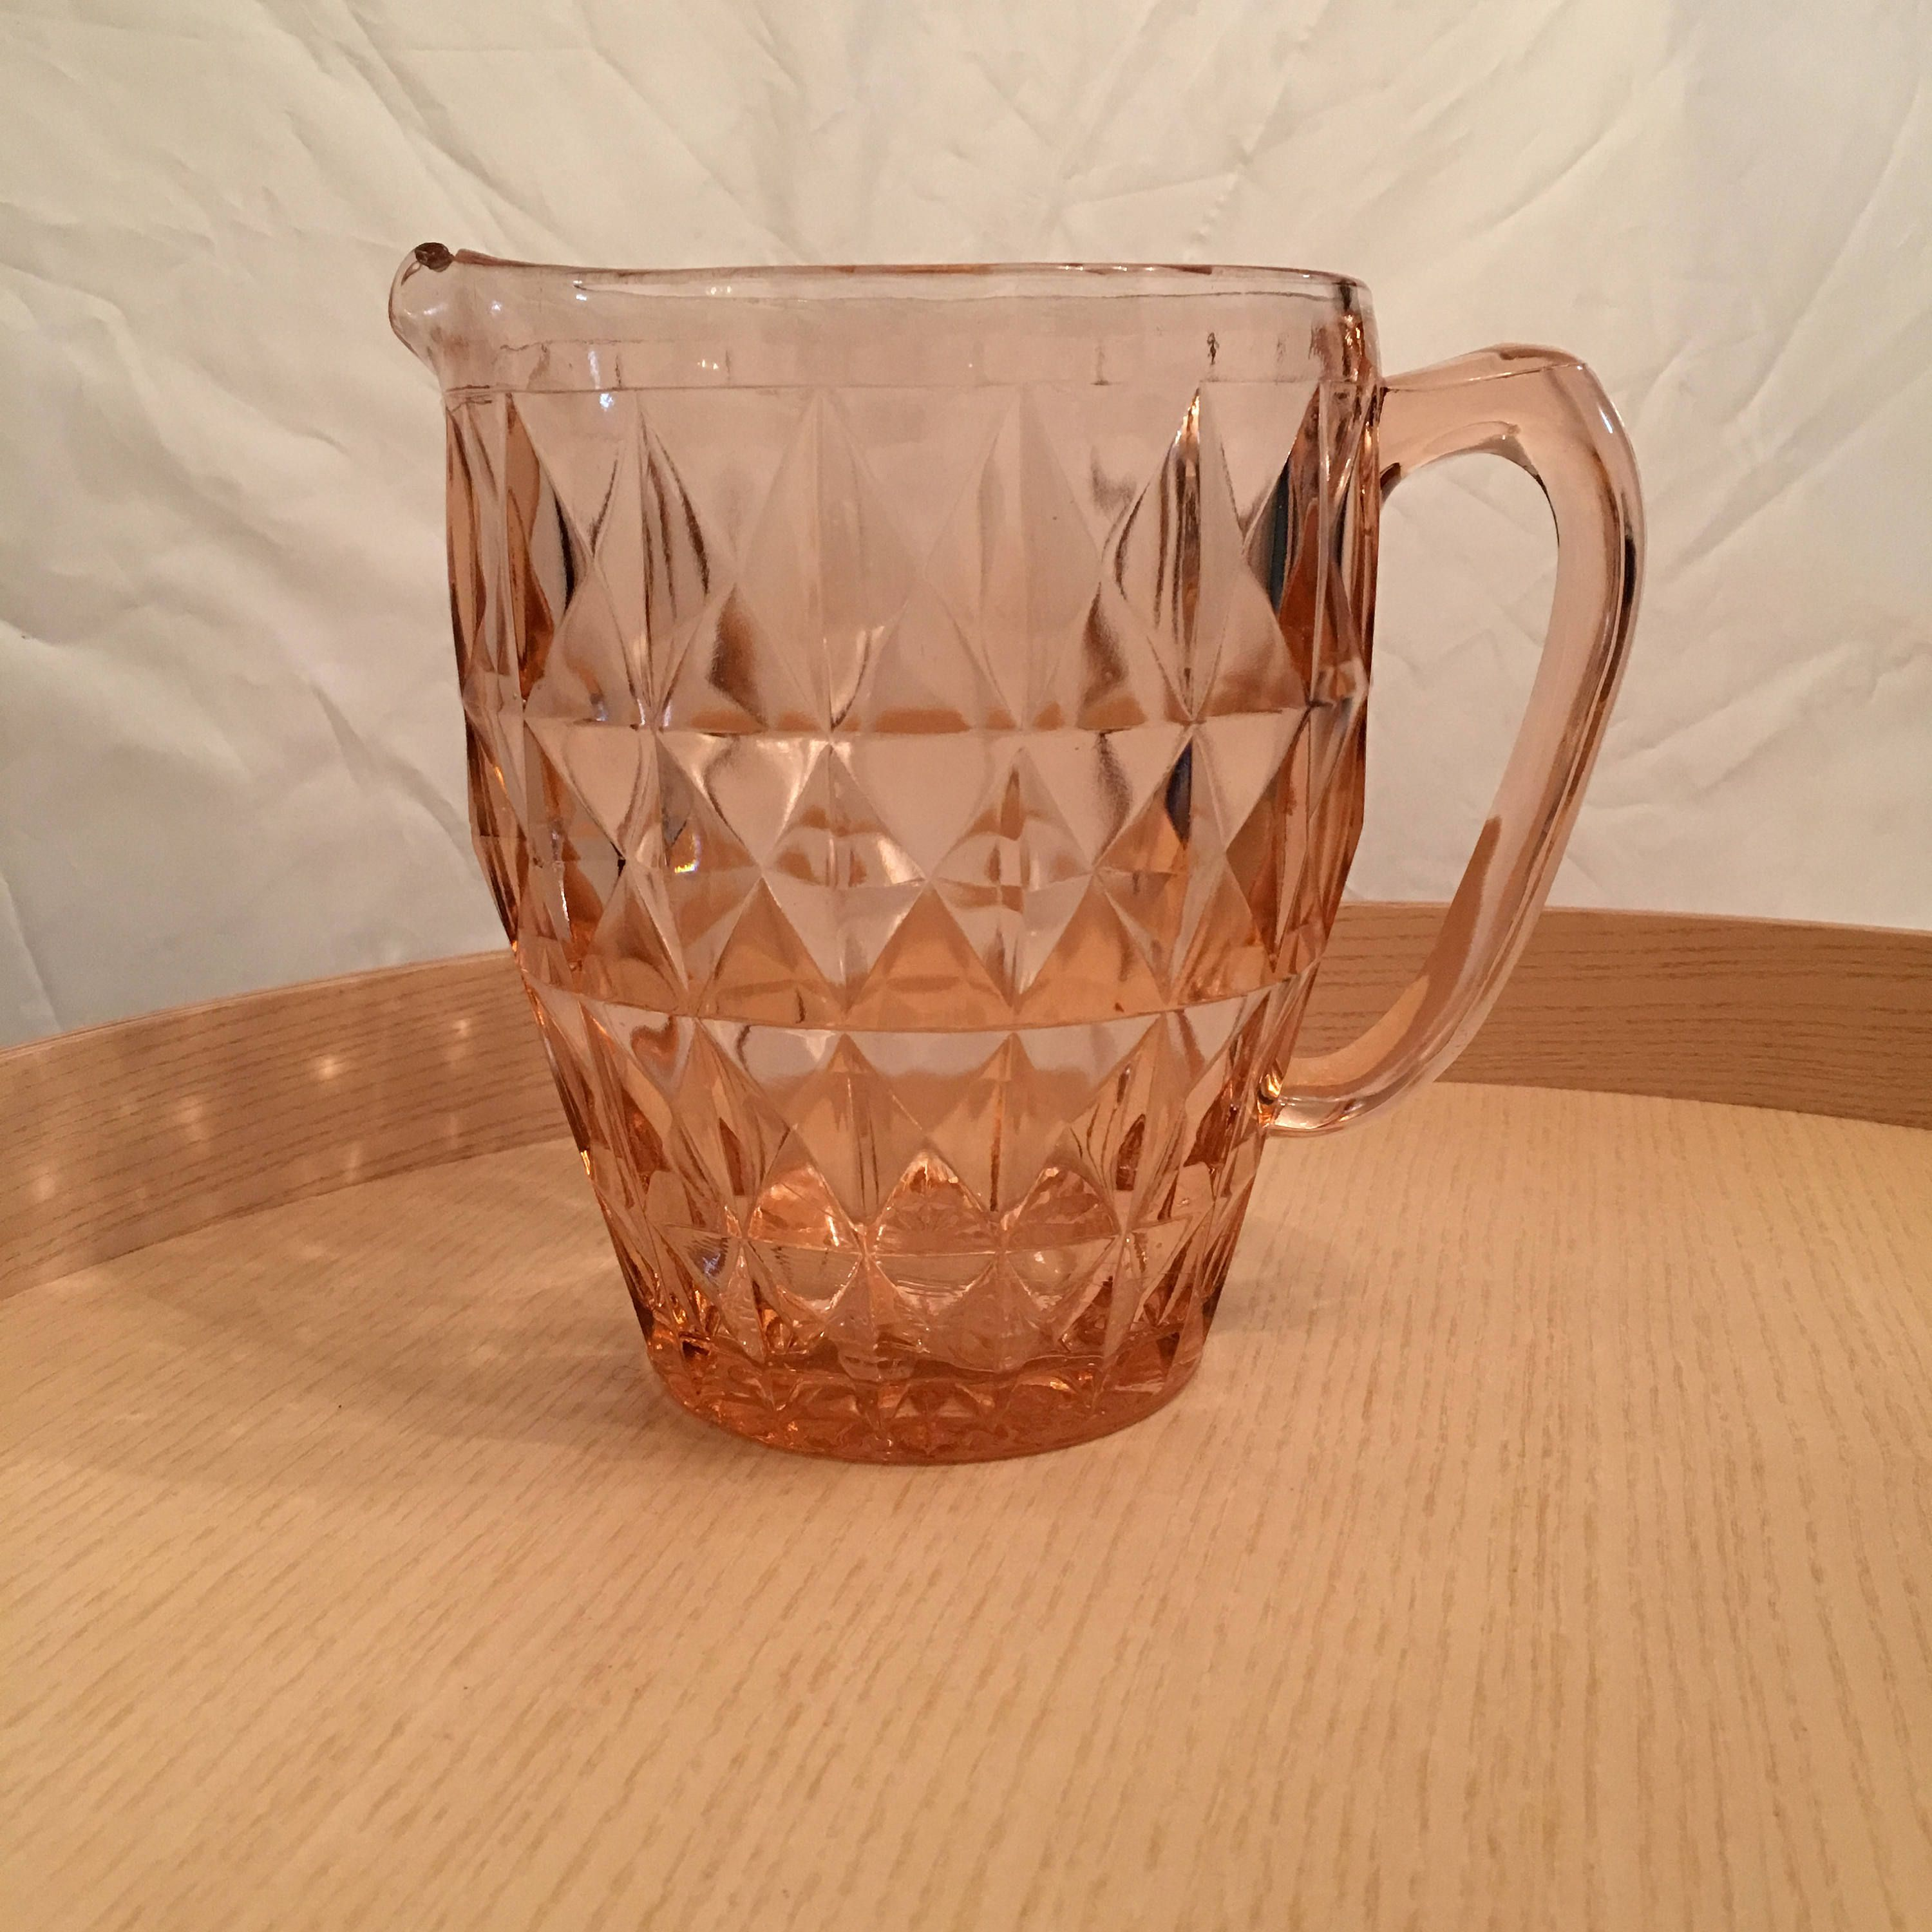 Depression glass jeannette windsor diamond pitcher large pink depression glass jeannette windsor diamond pitcher large pink glass pitcher vintage diamond cut depression reviewsmspy